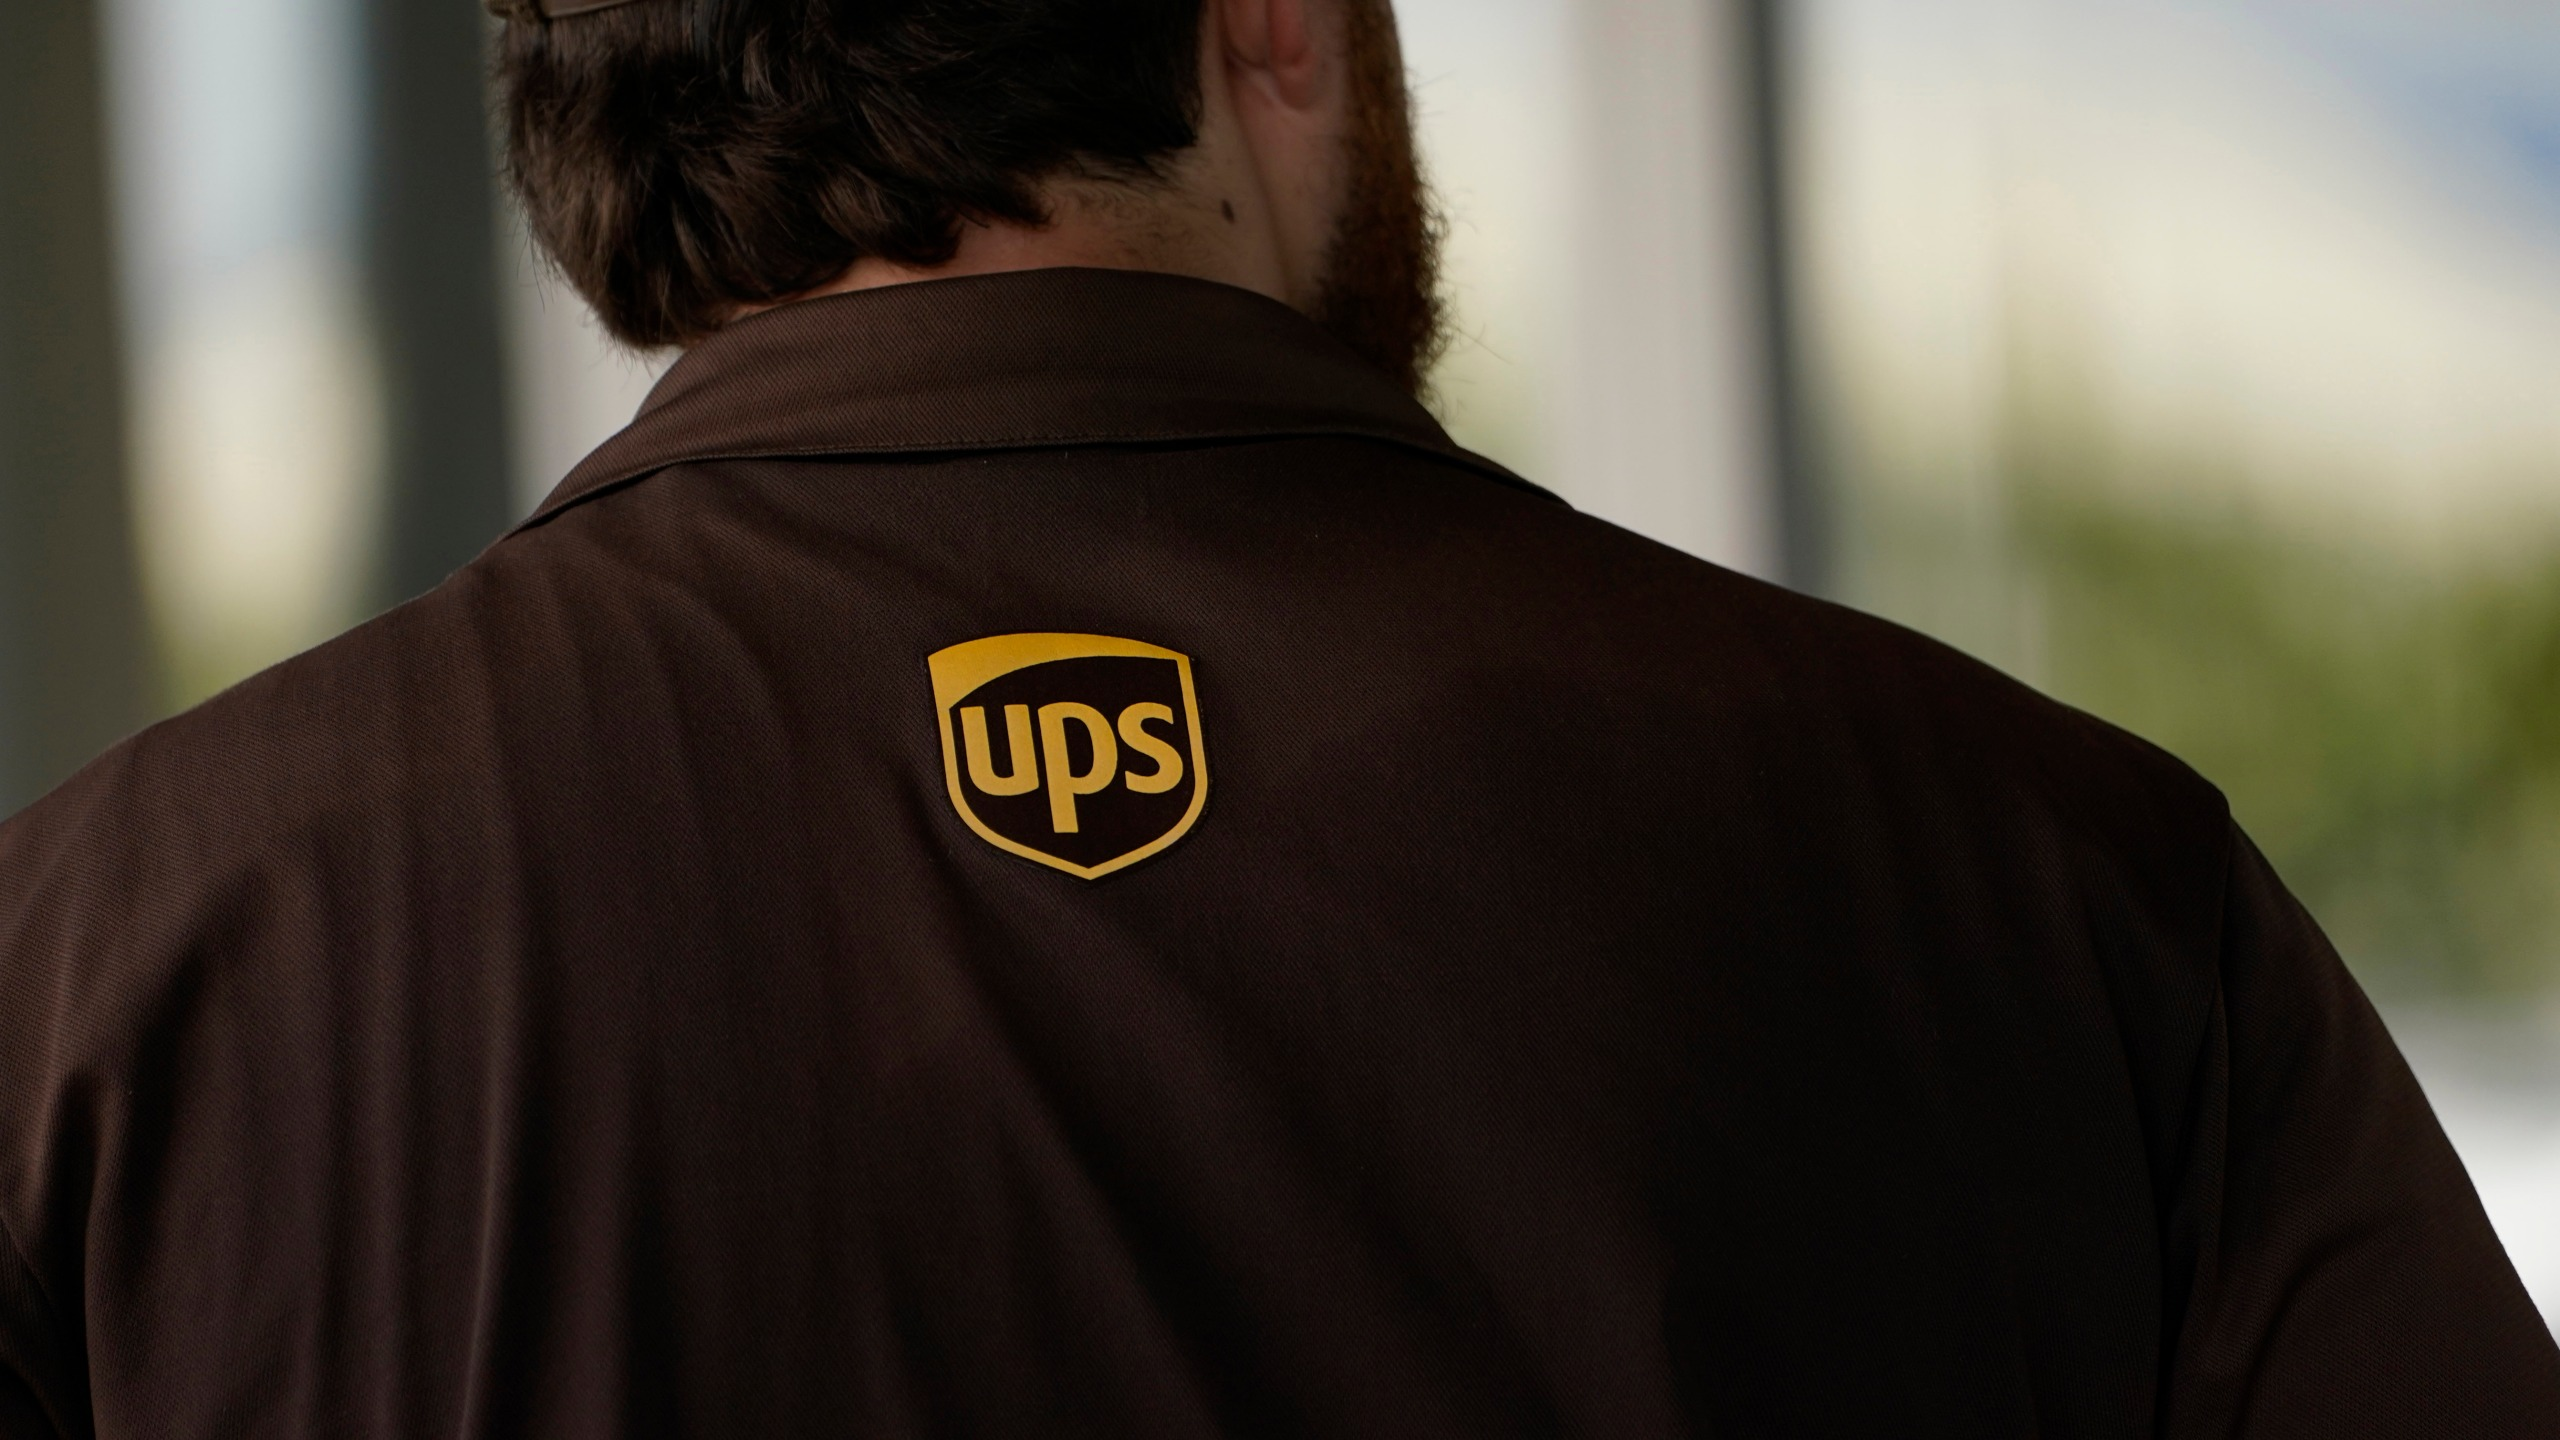 A UPS logo is on the shirt of a driver as he enters a United Parcel Service store with packages in Jackson, Miss., Monday, July 26, 2021. Amazon, Chobani, UPS and more than 30 other companies have vowed to hire and train refugees fleeing Afghanistan for the U.S. The companies said Tuesday, Sept. 21, that they want to help the tens of thousands of Afghan refugees coming to America to integrate into the economy. (AP Photo/Rogelio V. Solis, File)